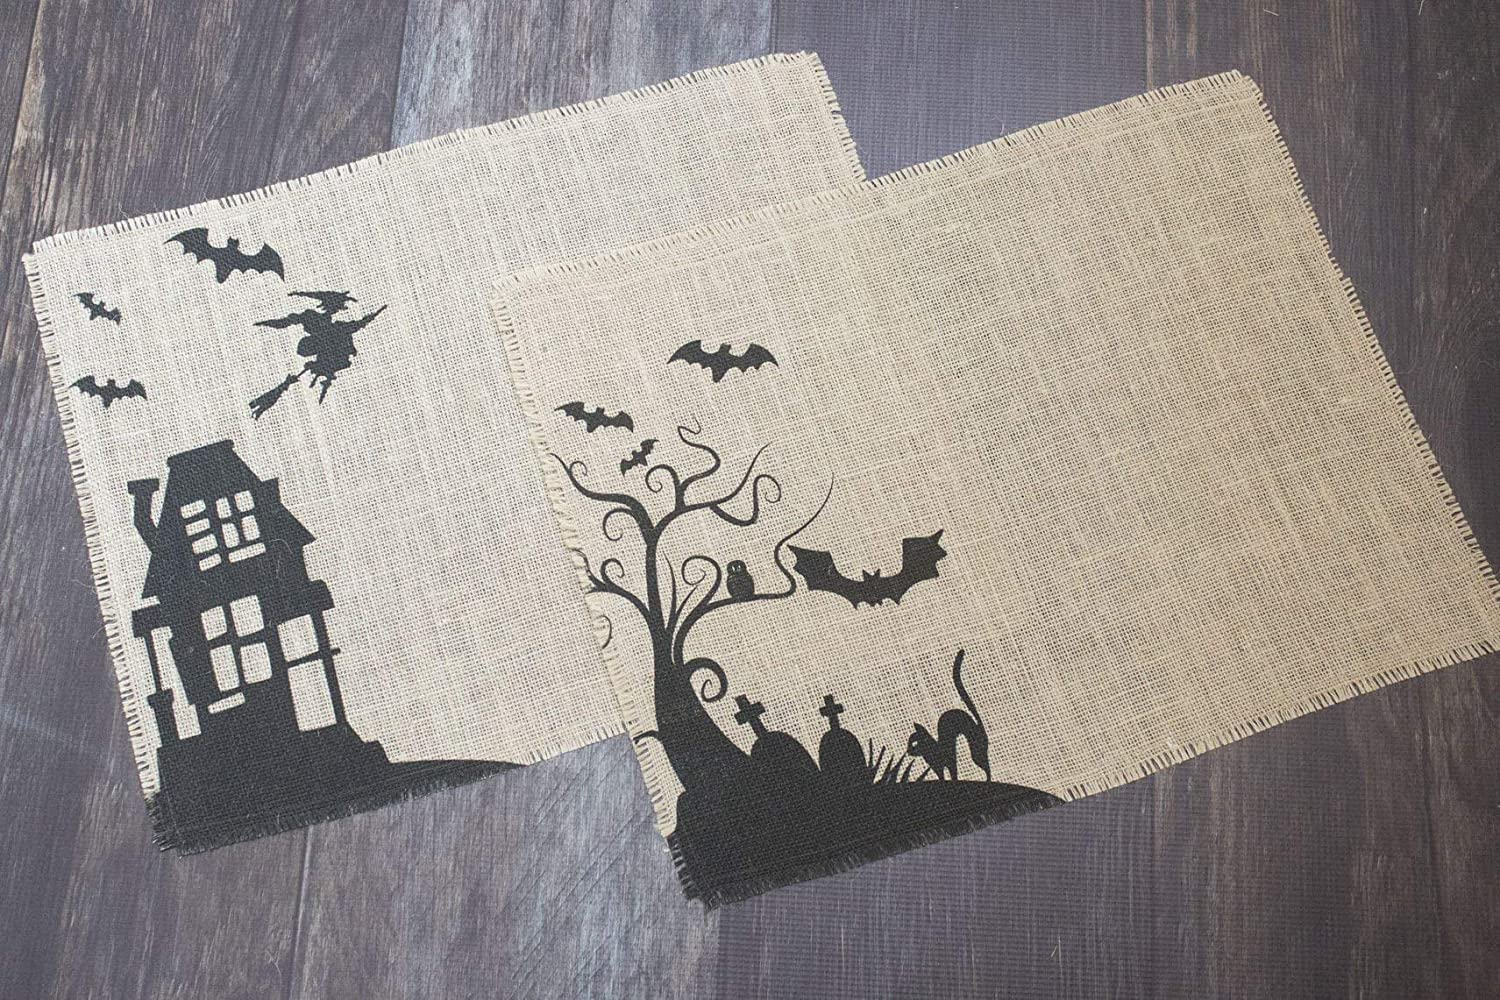 Spooky Halloween burlap placemats - set of two mats featuring bats, black cats and a flying witch